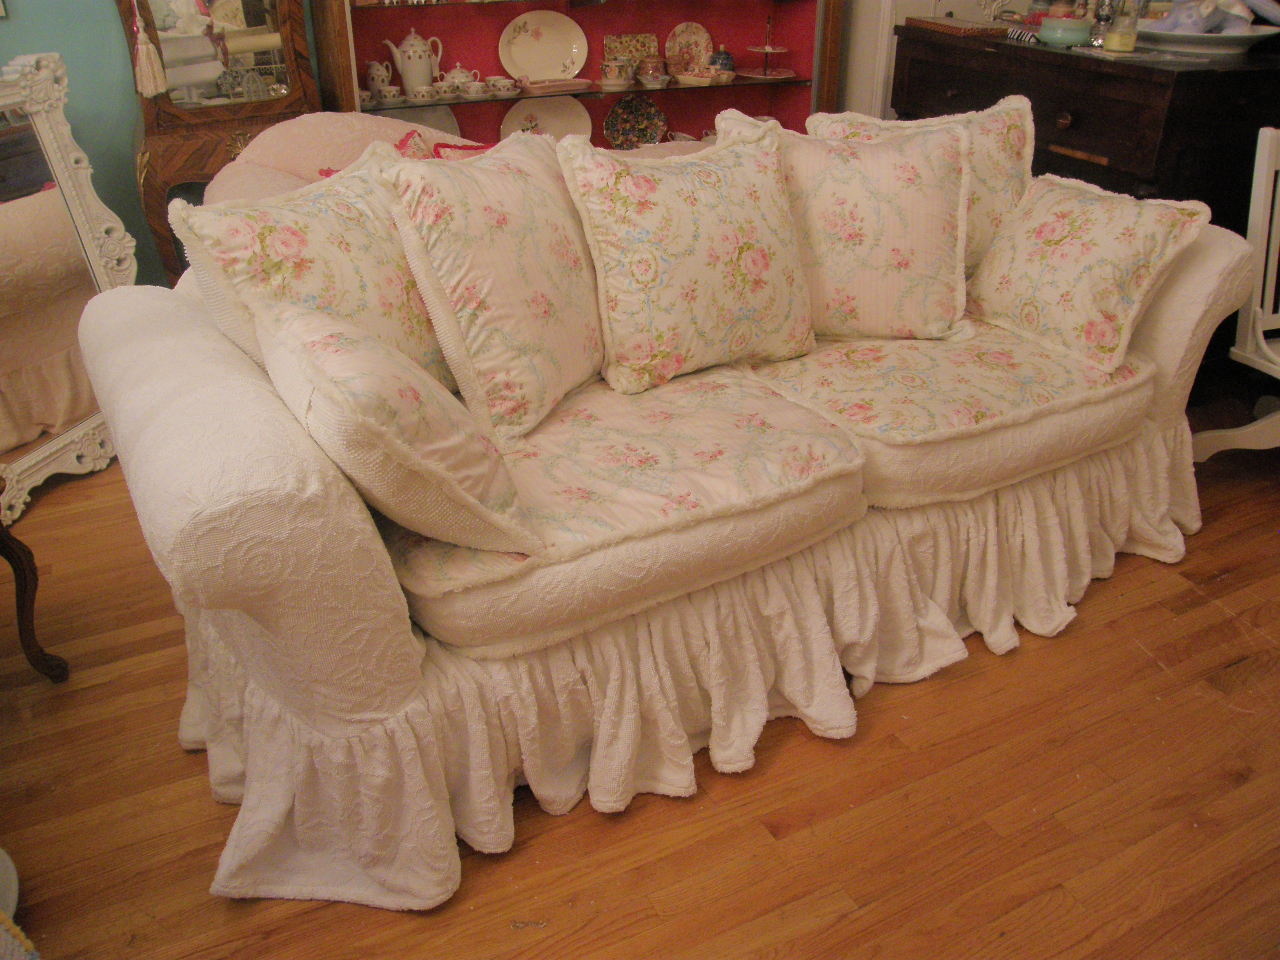 Vintage chic furniture schenectady ny shabby chic - What is shabby chic ...